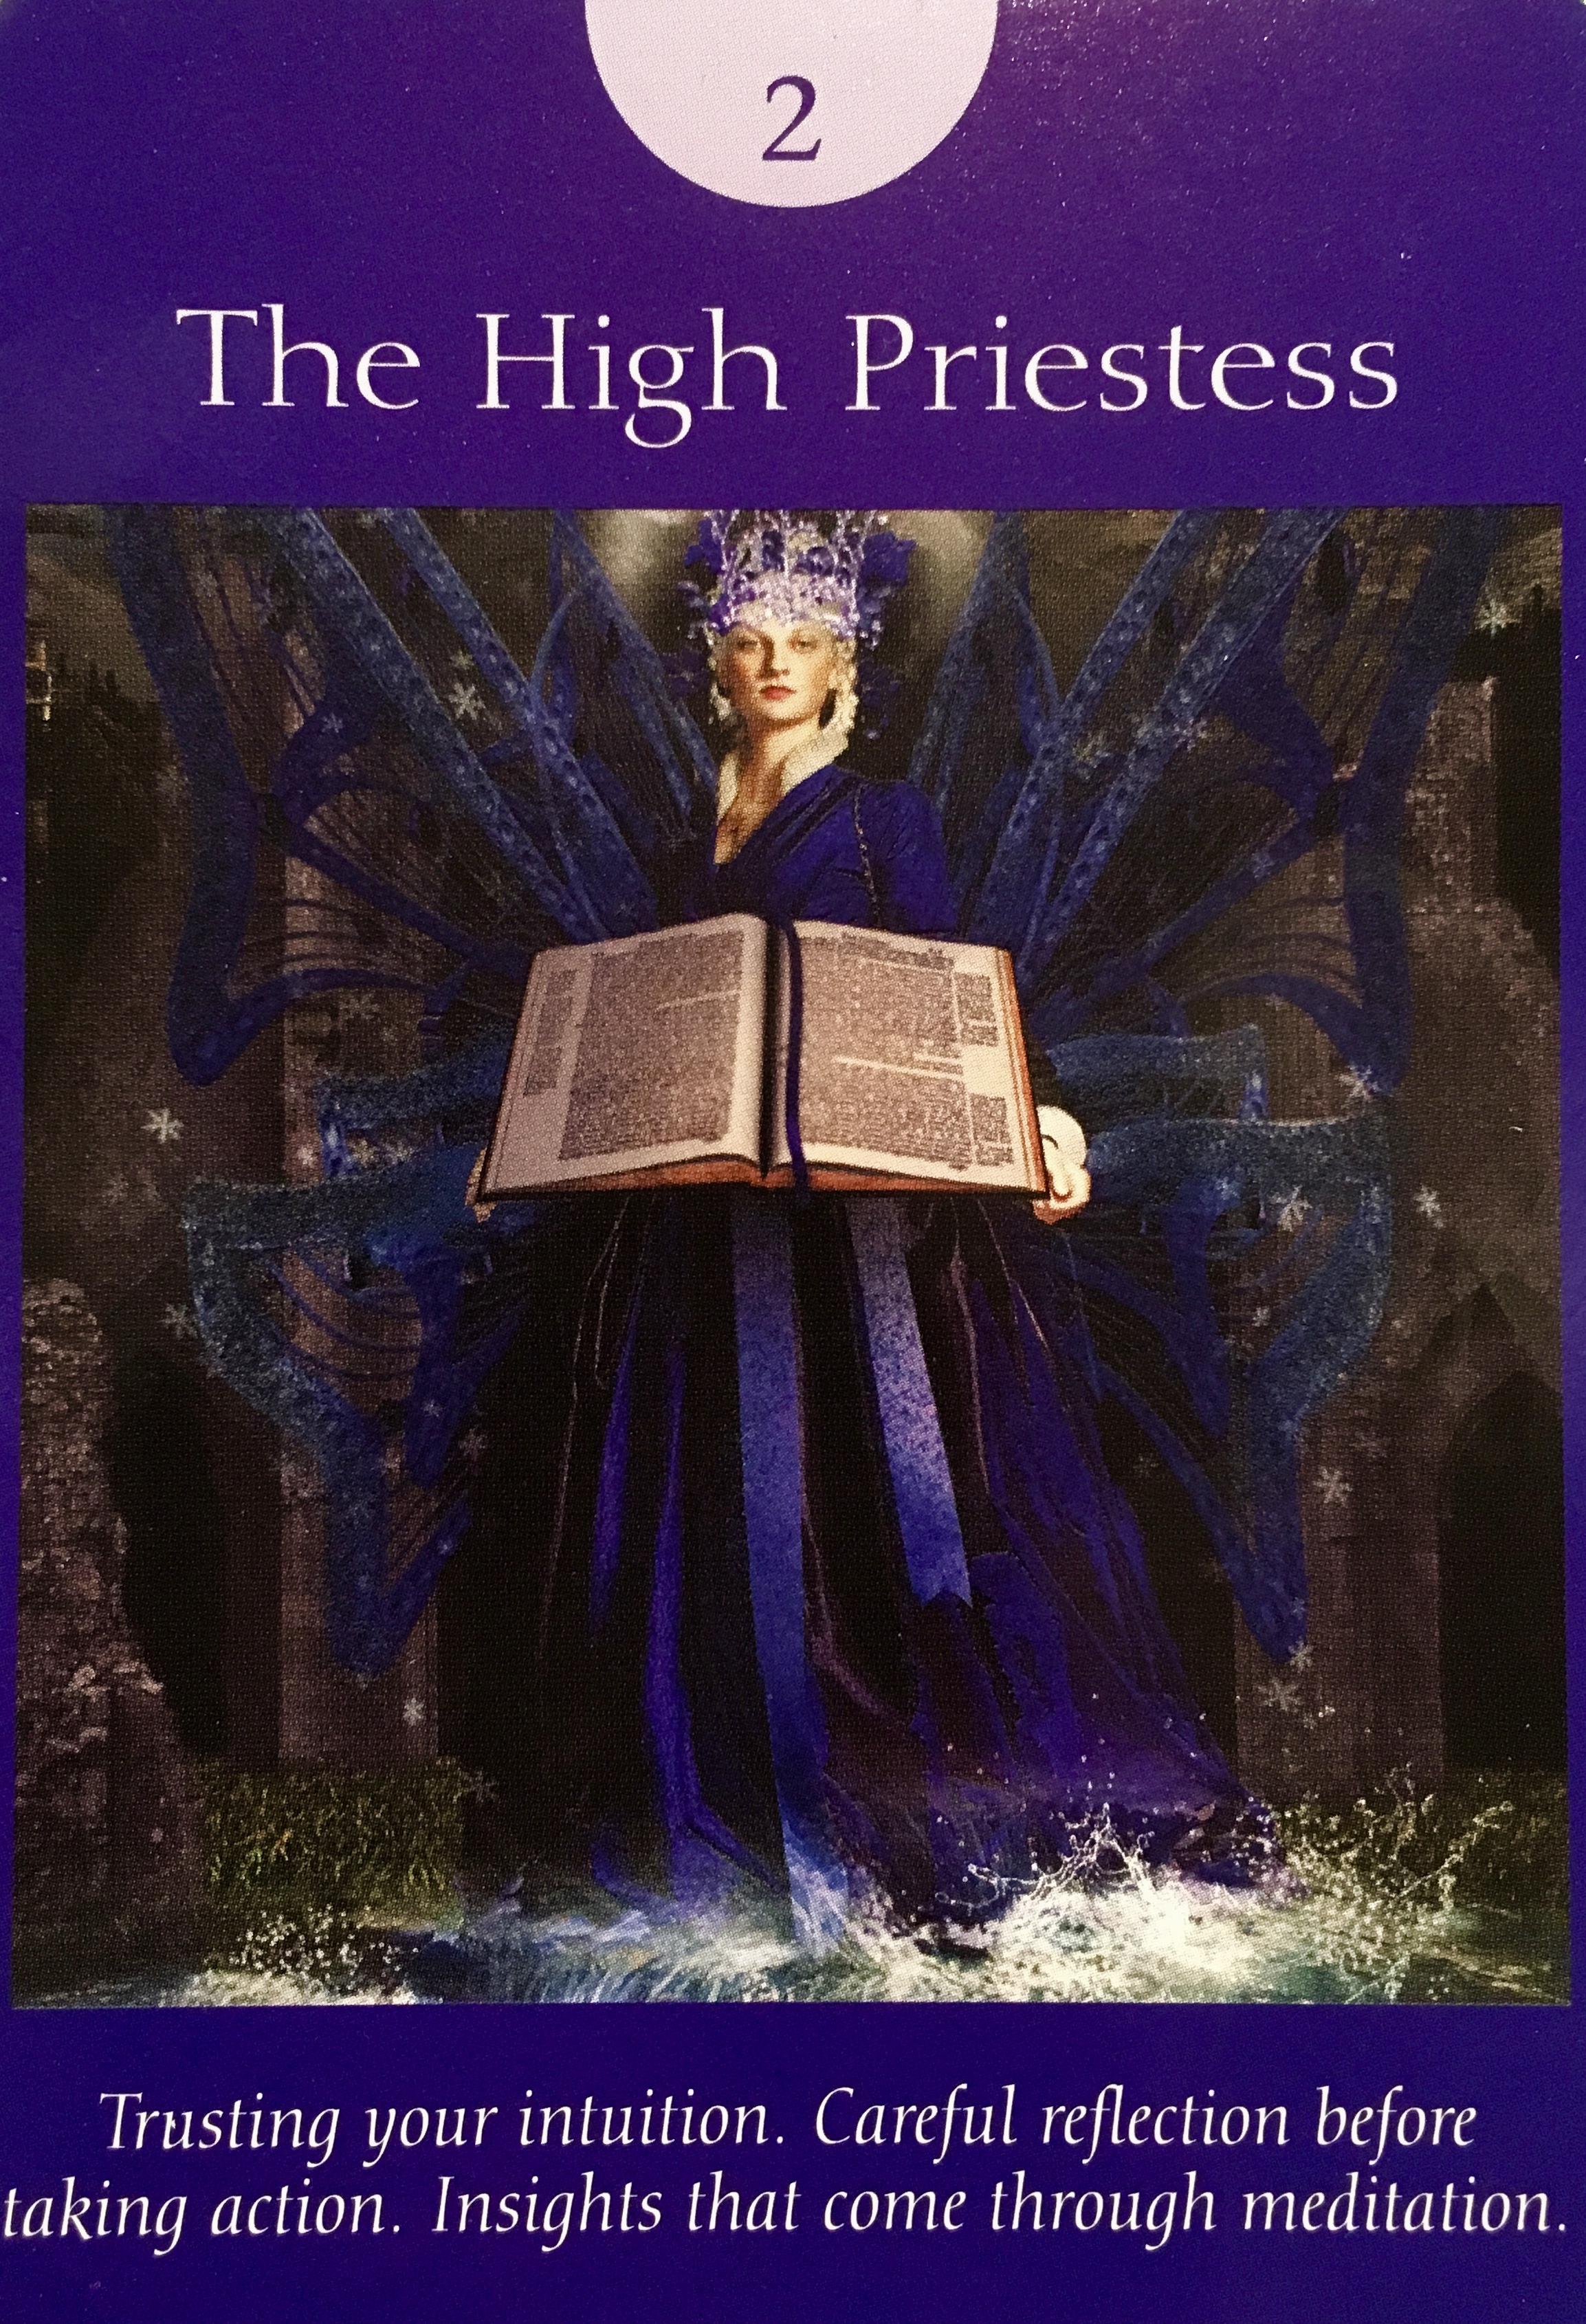 The High Priestess, From The Fairy Tarot Cards, By Doreen Virtue Ph.D